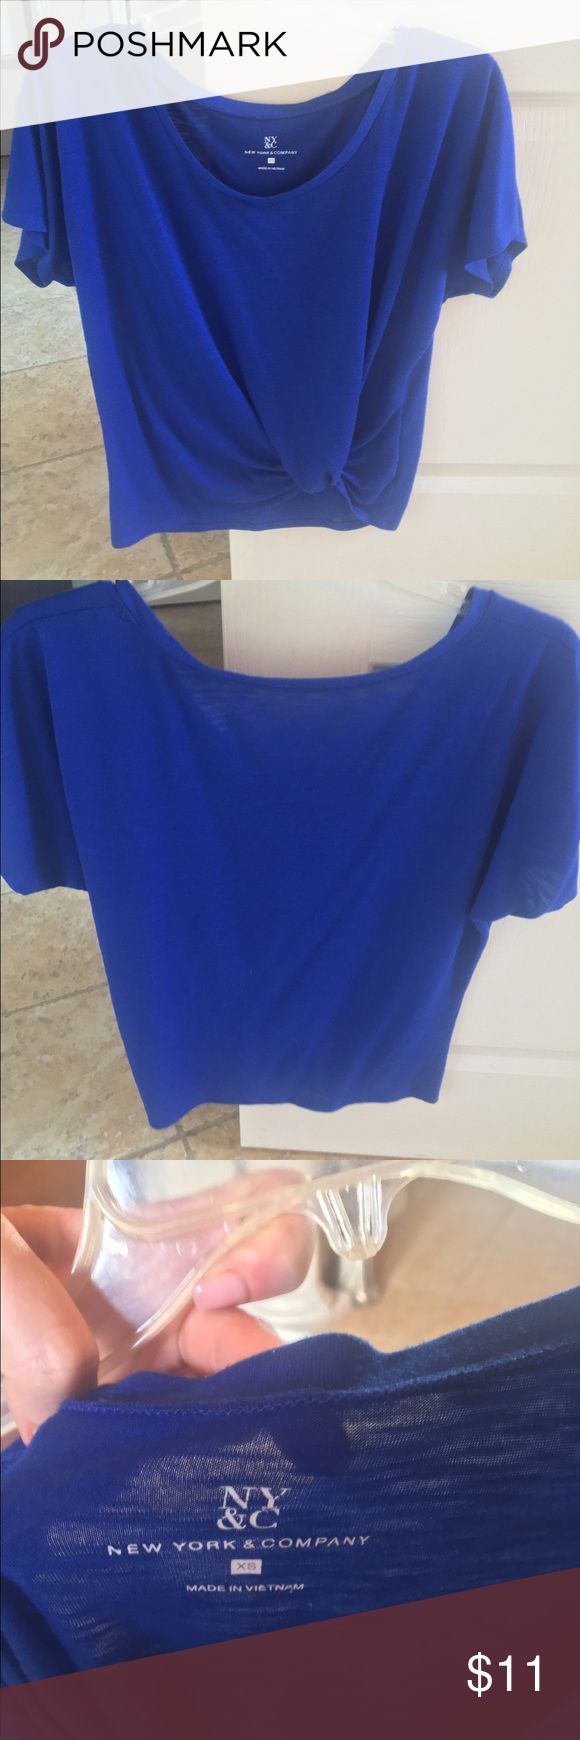 Royal blue top Royal blue NY & Co top with built in knot in front to subtly show off midriff New York & Company Tops